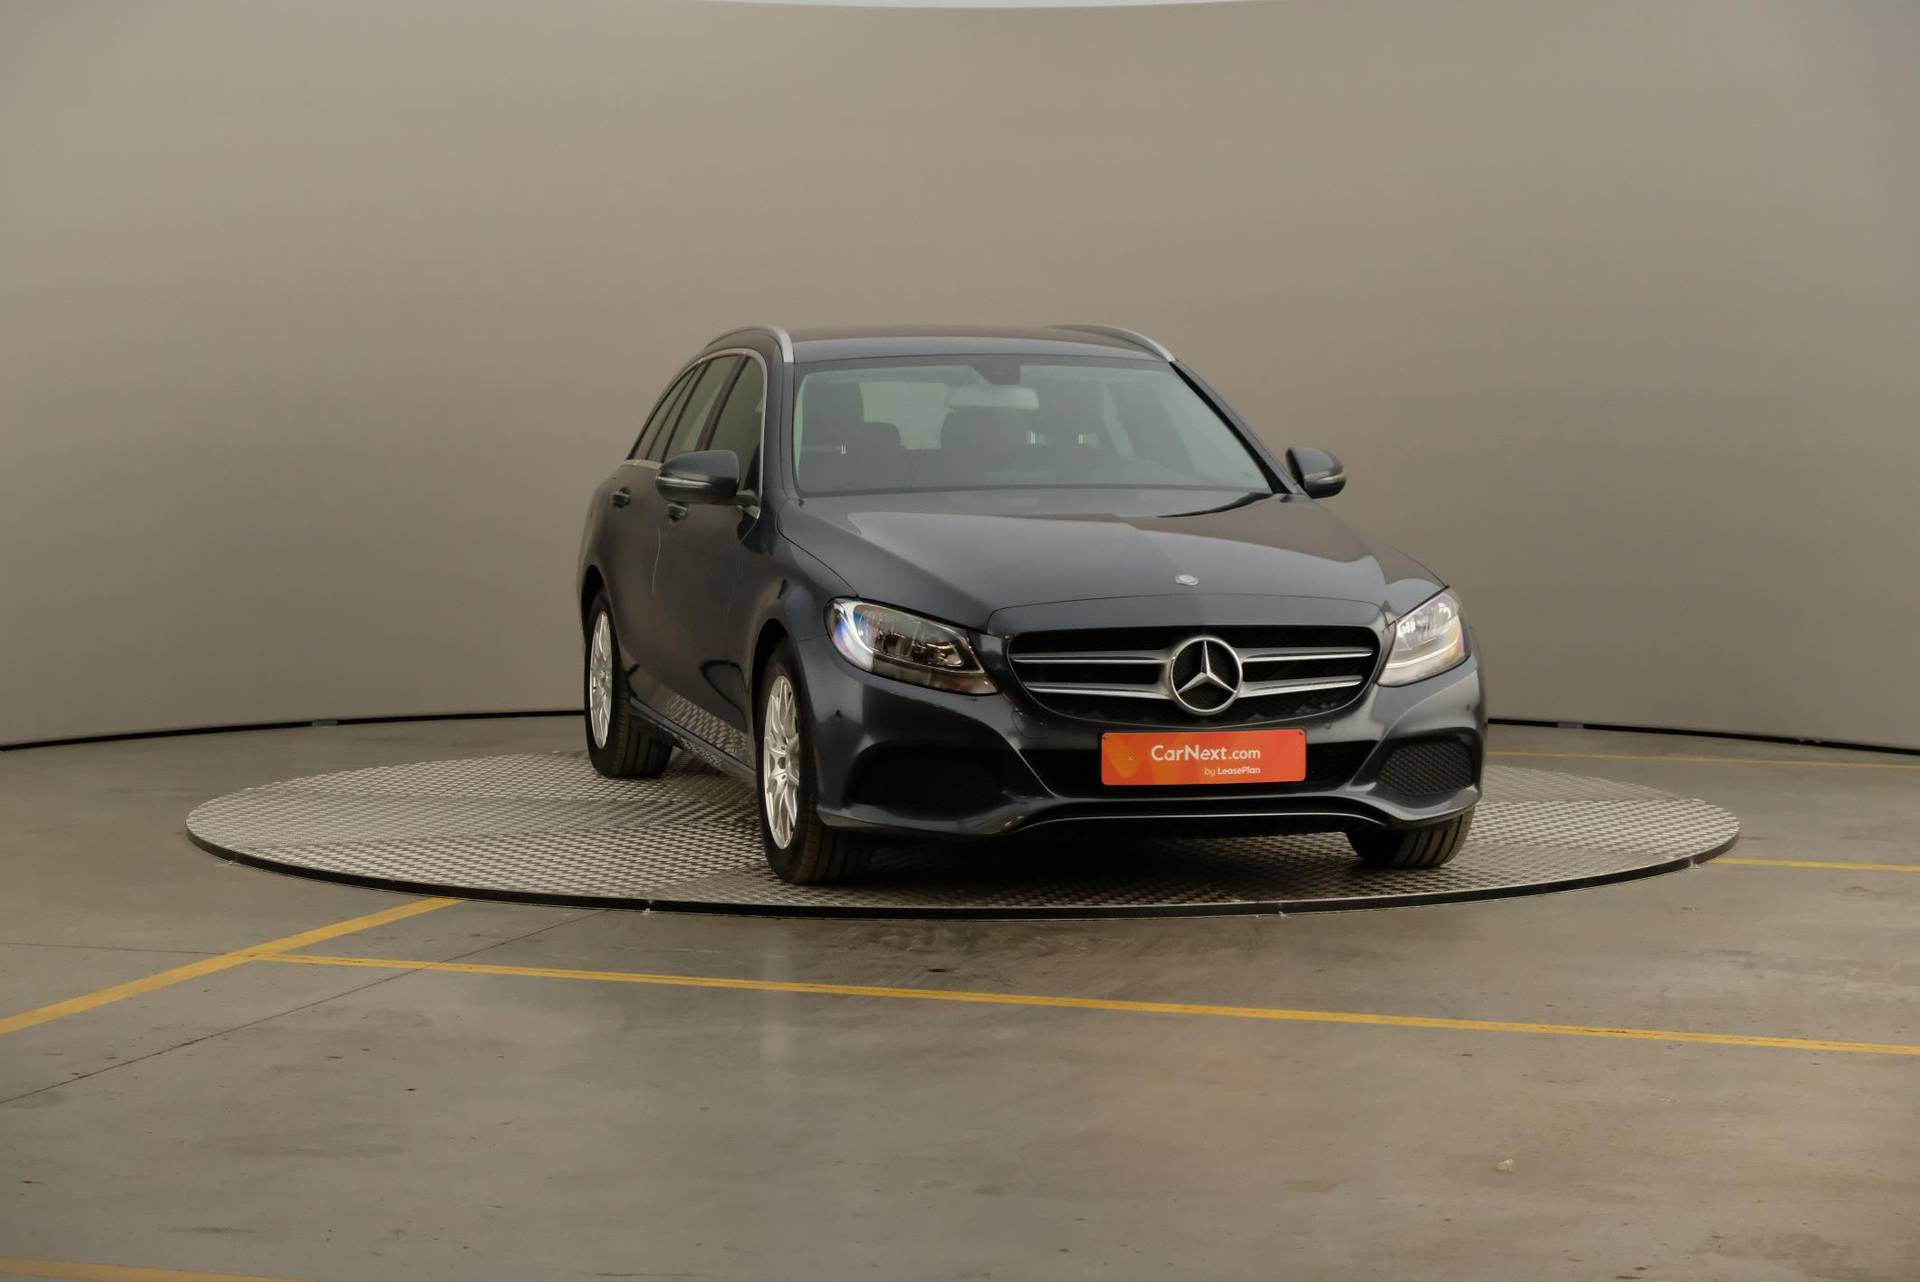 Mercedes-Benz C-Klasse 180 d PACK AVANTGARDE PACK EASY GPS PDC TREKHAAK EURO 6.., 360-image30